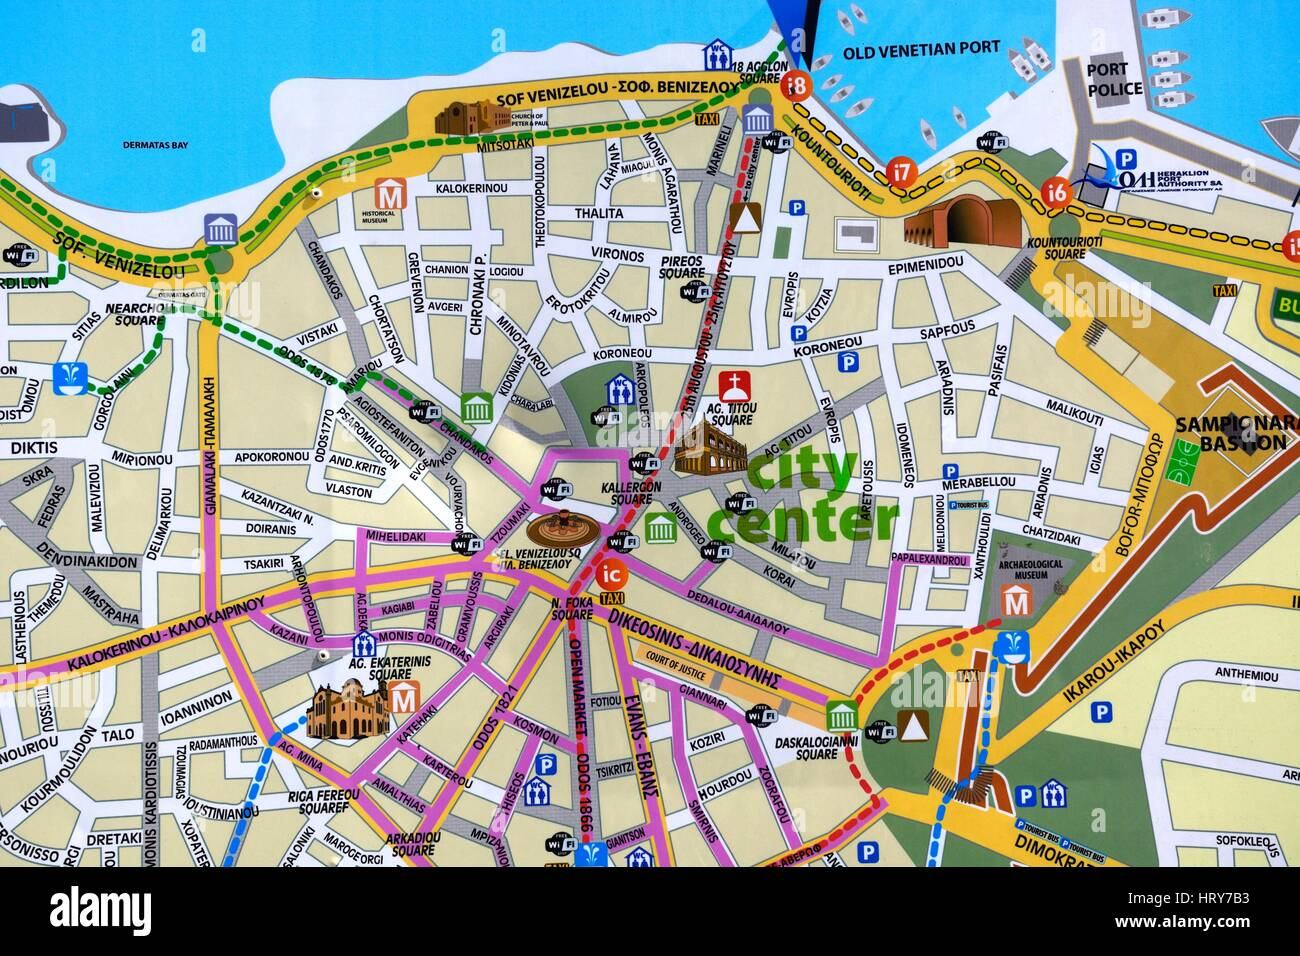 Centre Map Stock Photos Centre Map Stock Images Alamy